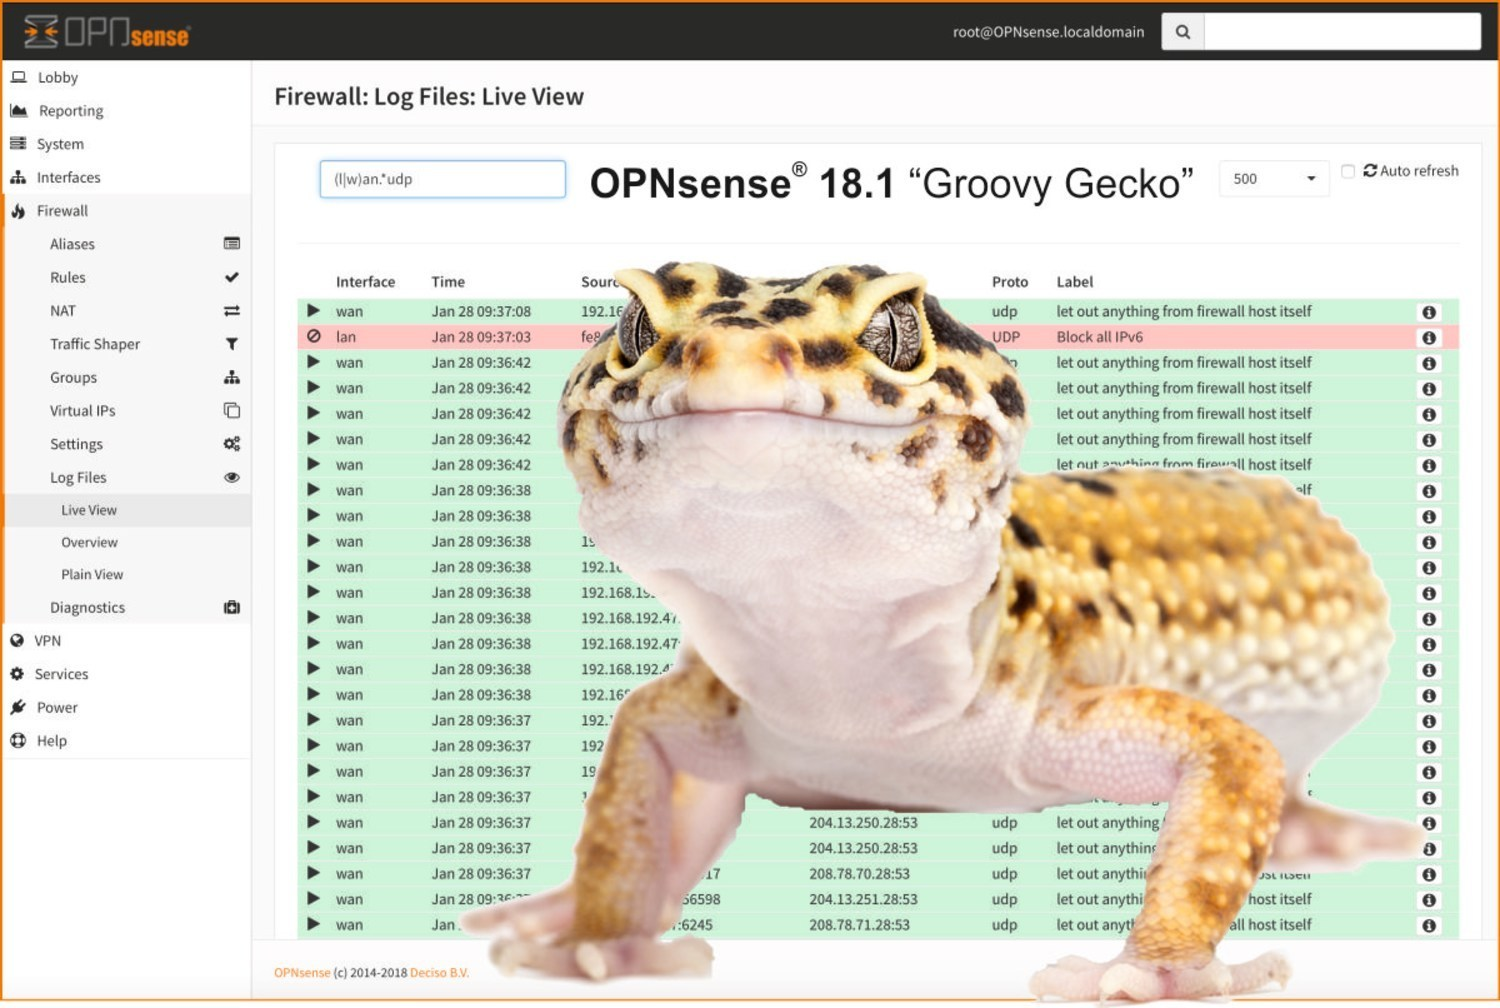 OPNsense® 18 1 'Groovy Gecko' 500 times improved